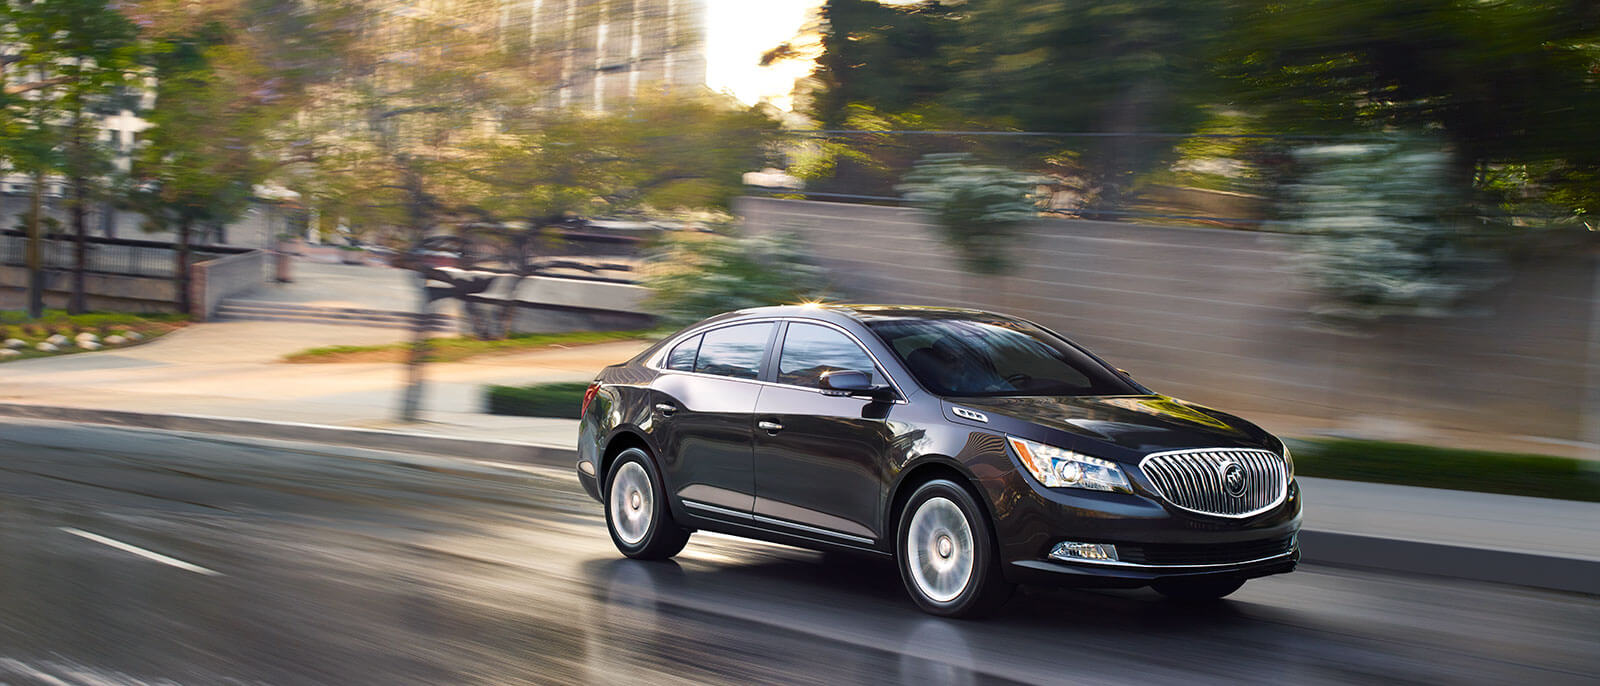 road test news and view lacrosse buick essence sedan drive review front first automobile